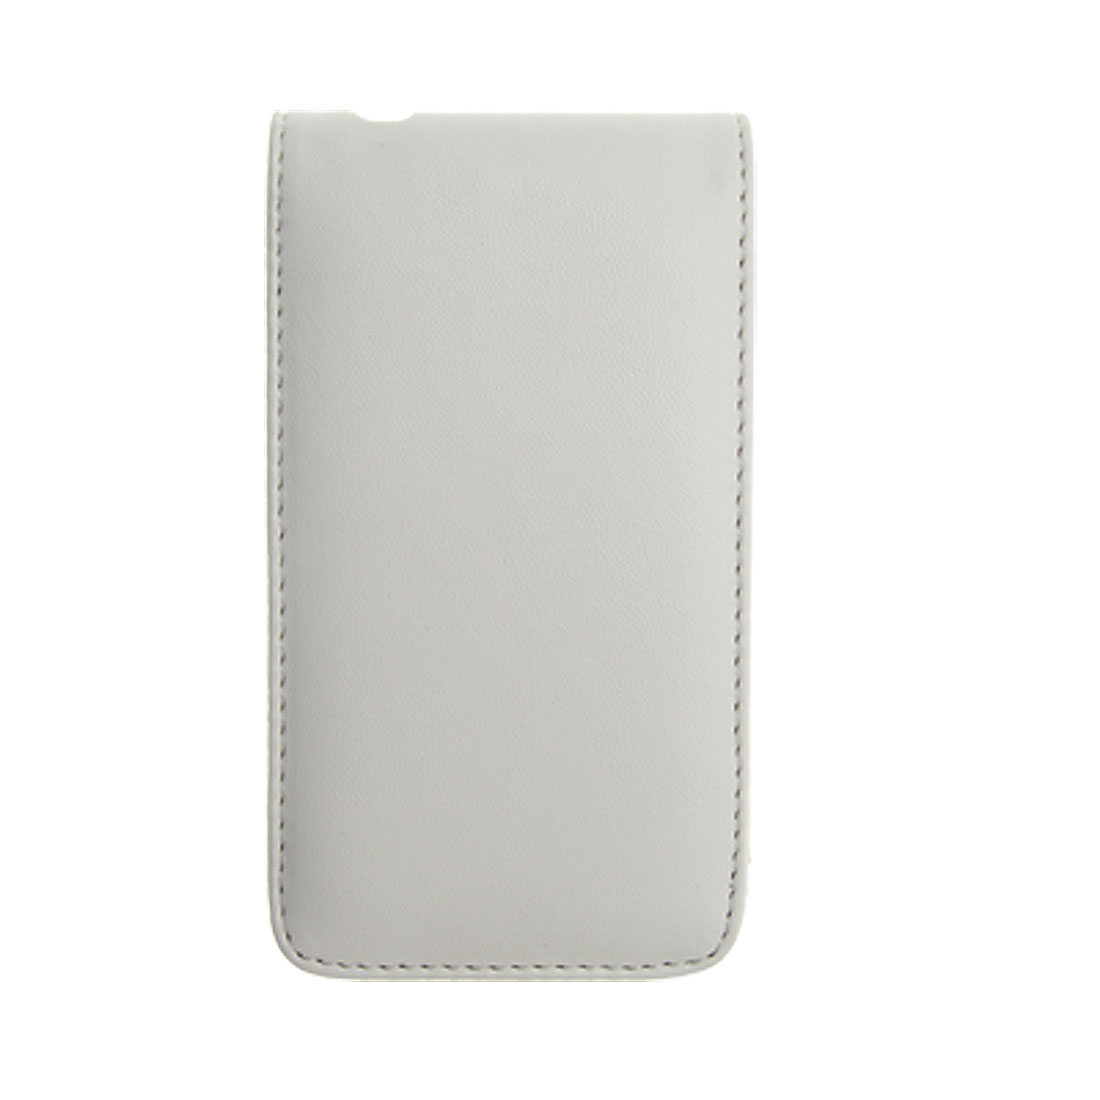 White Vertical Faux Leather Protective Pouch Case for iPhone 3G